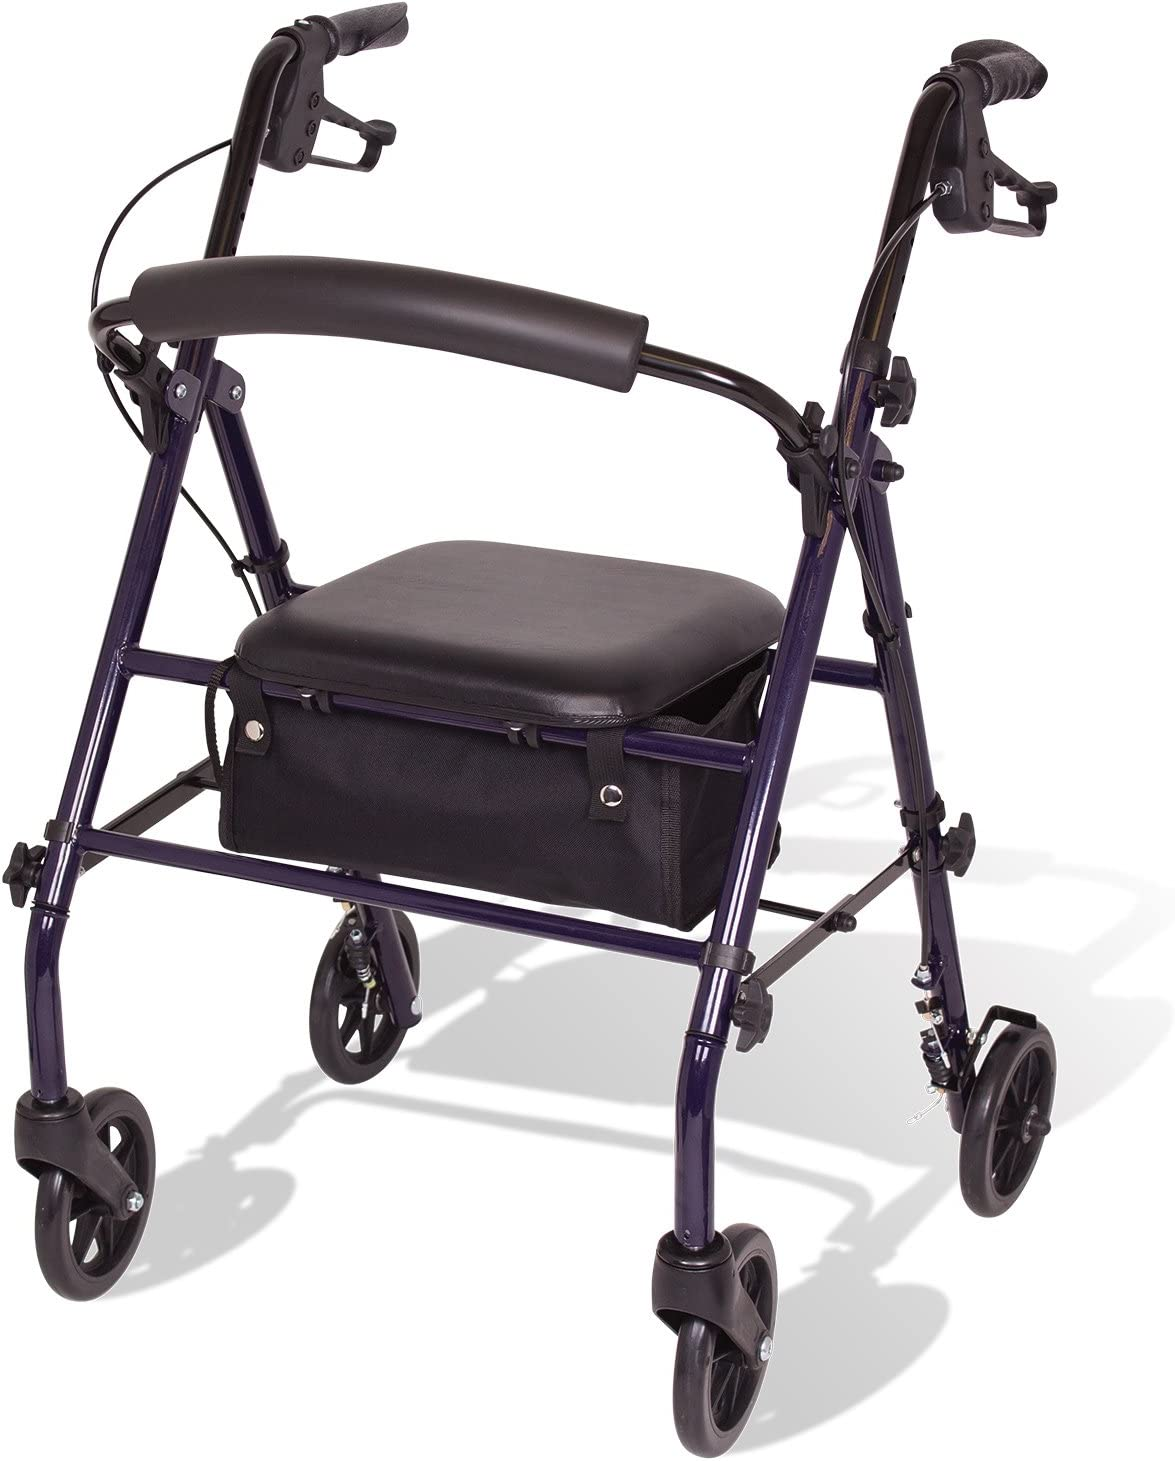 """Amazon.com: Carex Steel Rollator Walker with Seat and Wheels - Rolling  Walker for Seniors - Walker Supports 350lbs, Foldable, For Those 5'0"""" to  6'1"""" : Health & Household"""